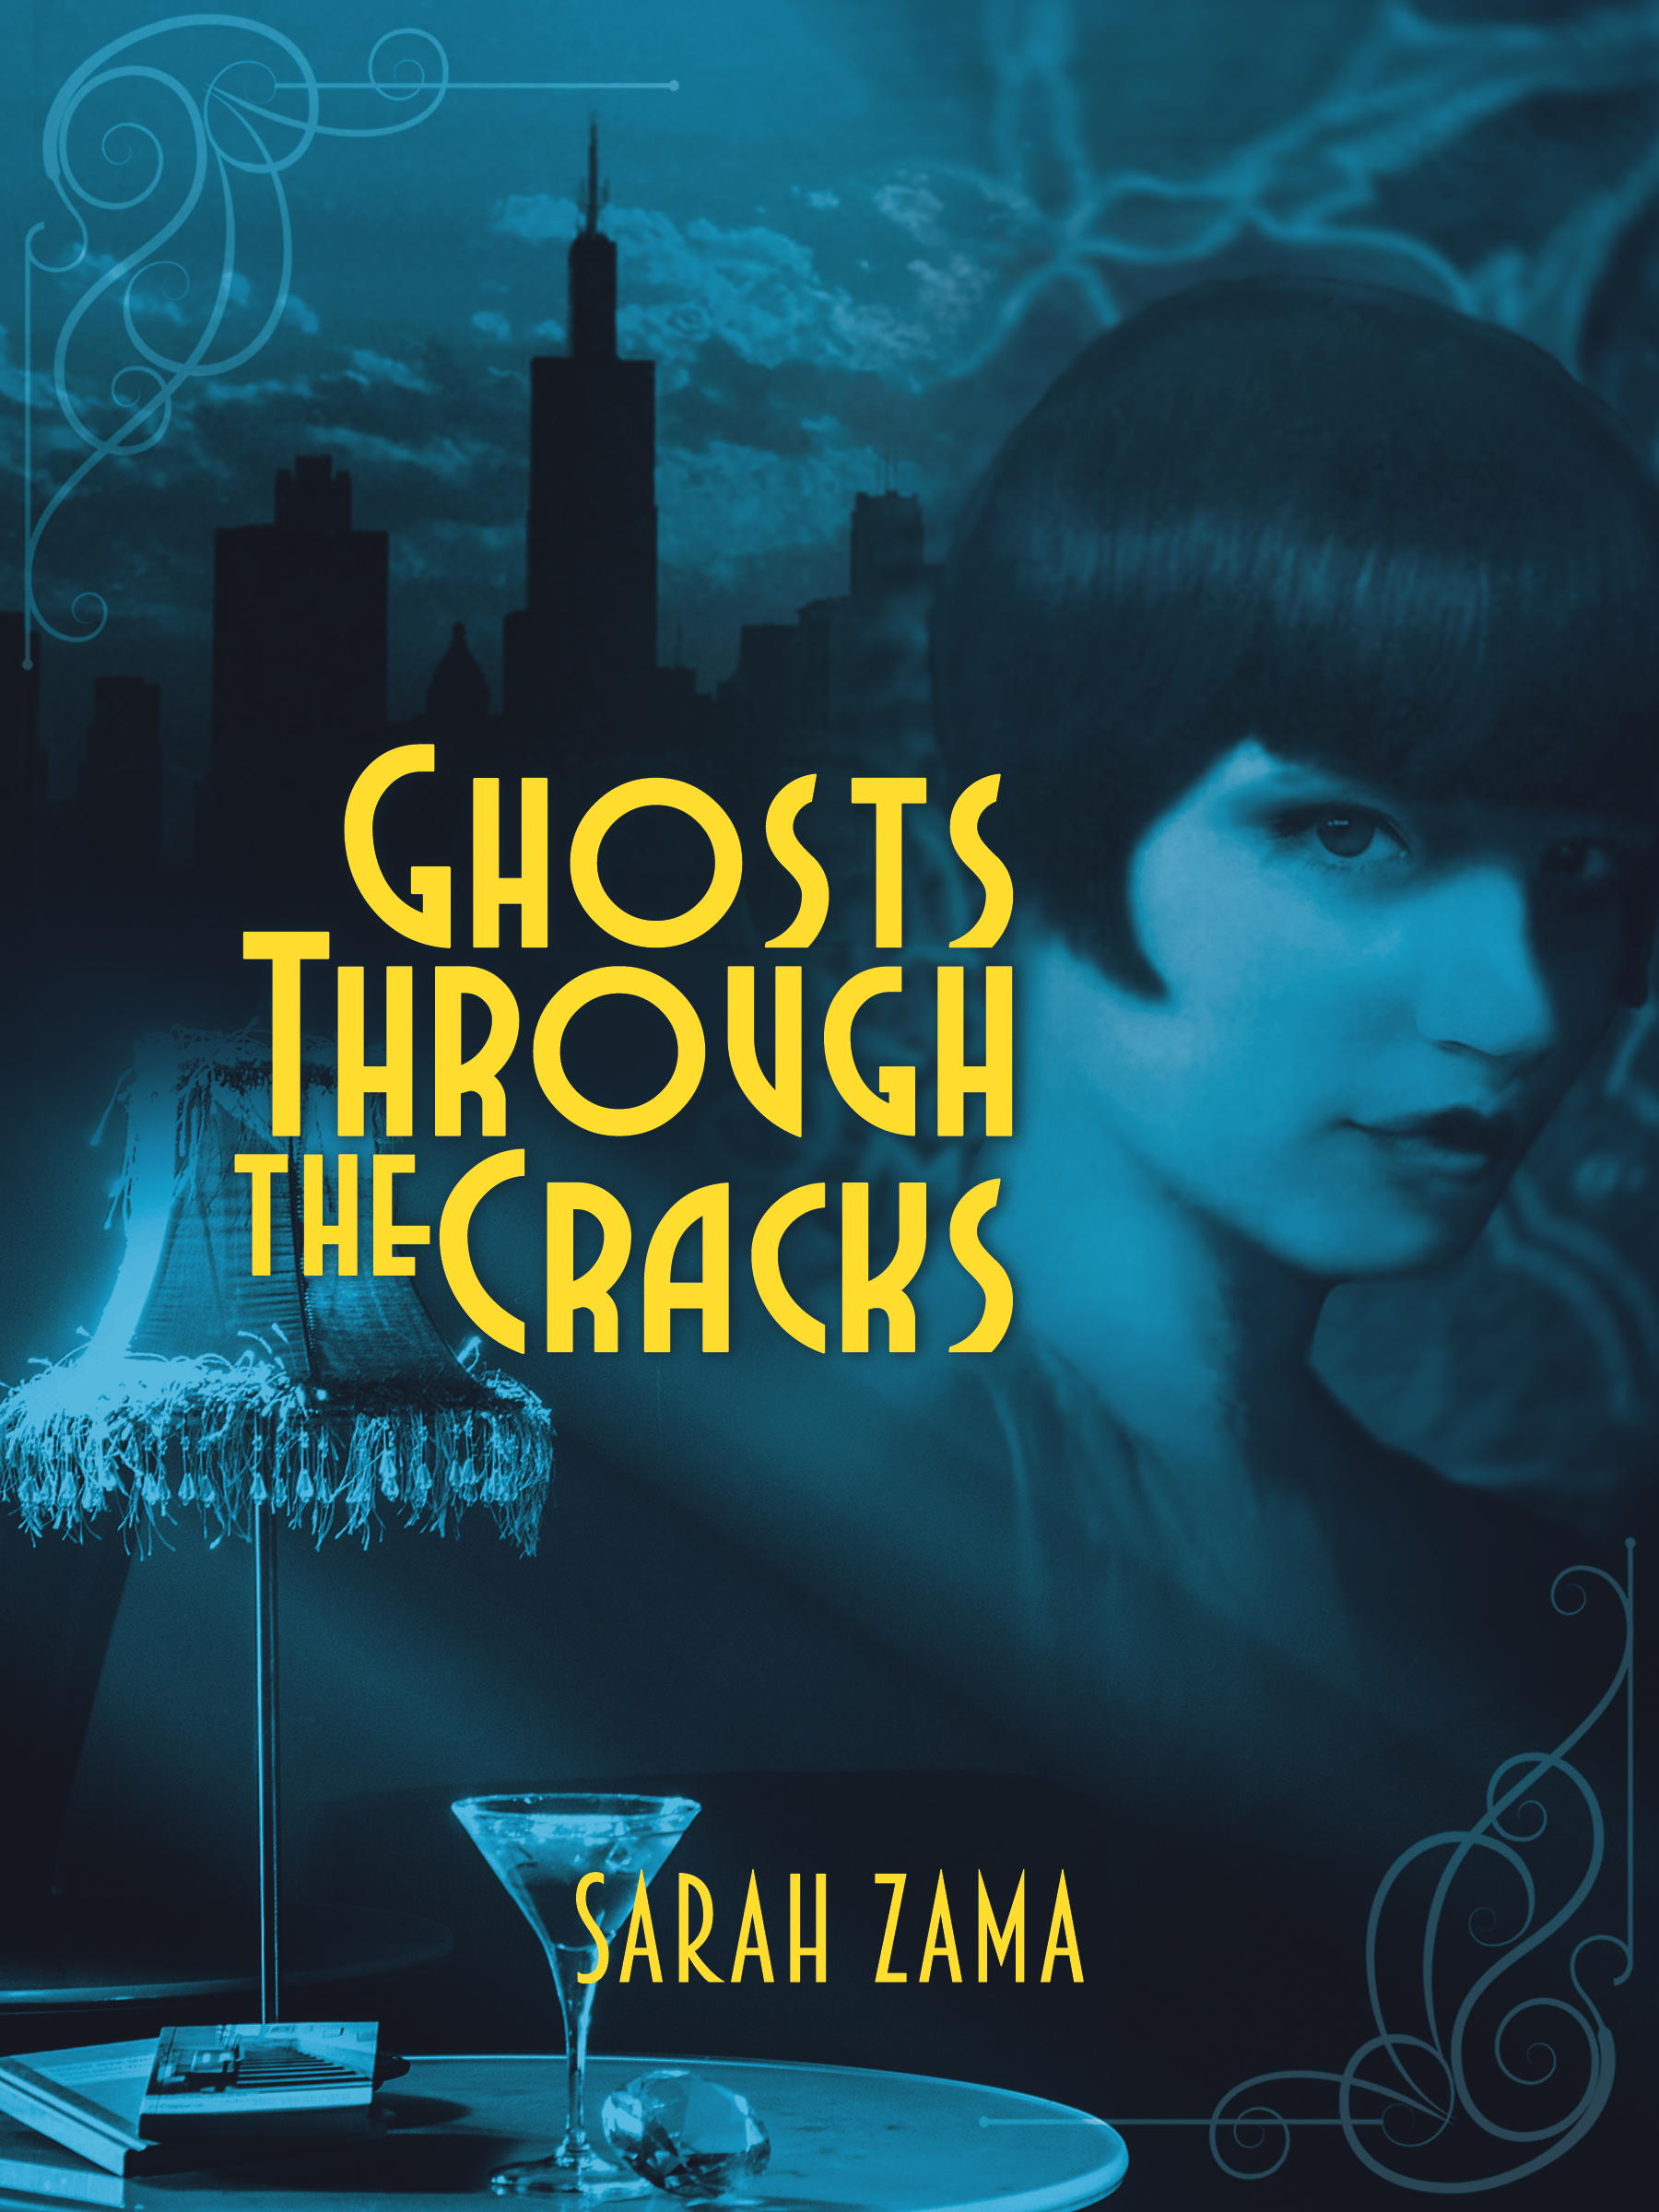 She calls it being true to herself. He calls it betrayal - Ghosts Trhough the Cracks by Sarah Zama (a 1920s historical fantasy novella)